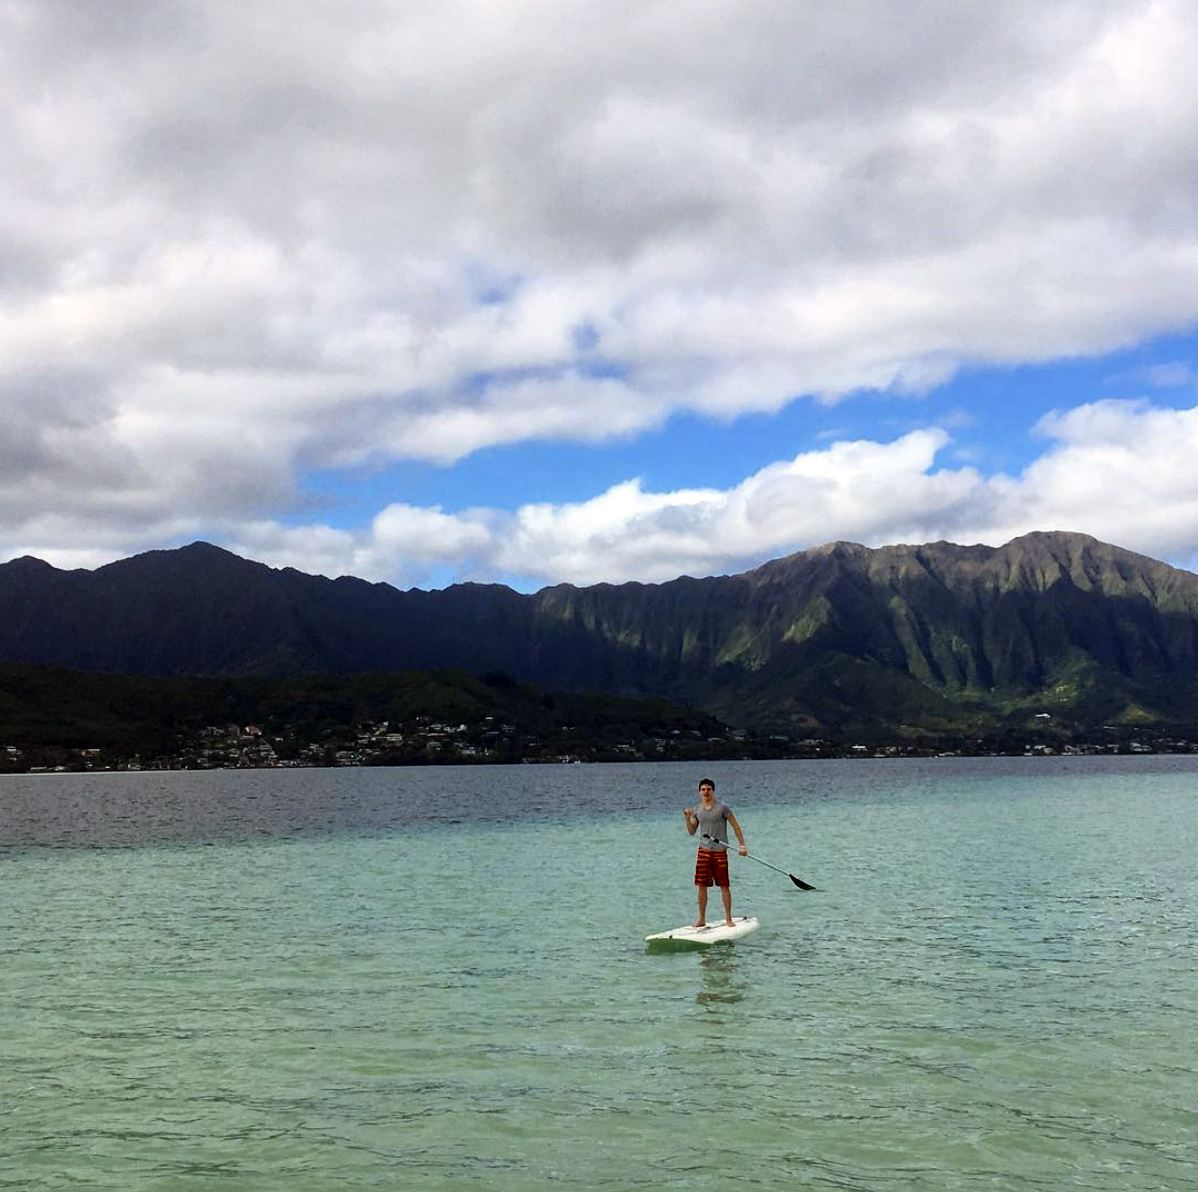 Stand-up paddle boarding in Kane'ohe Bay in Hawai'i.